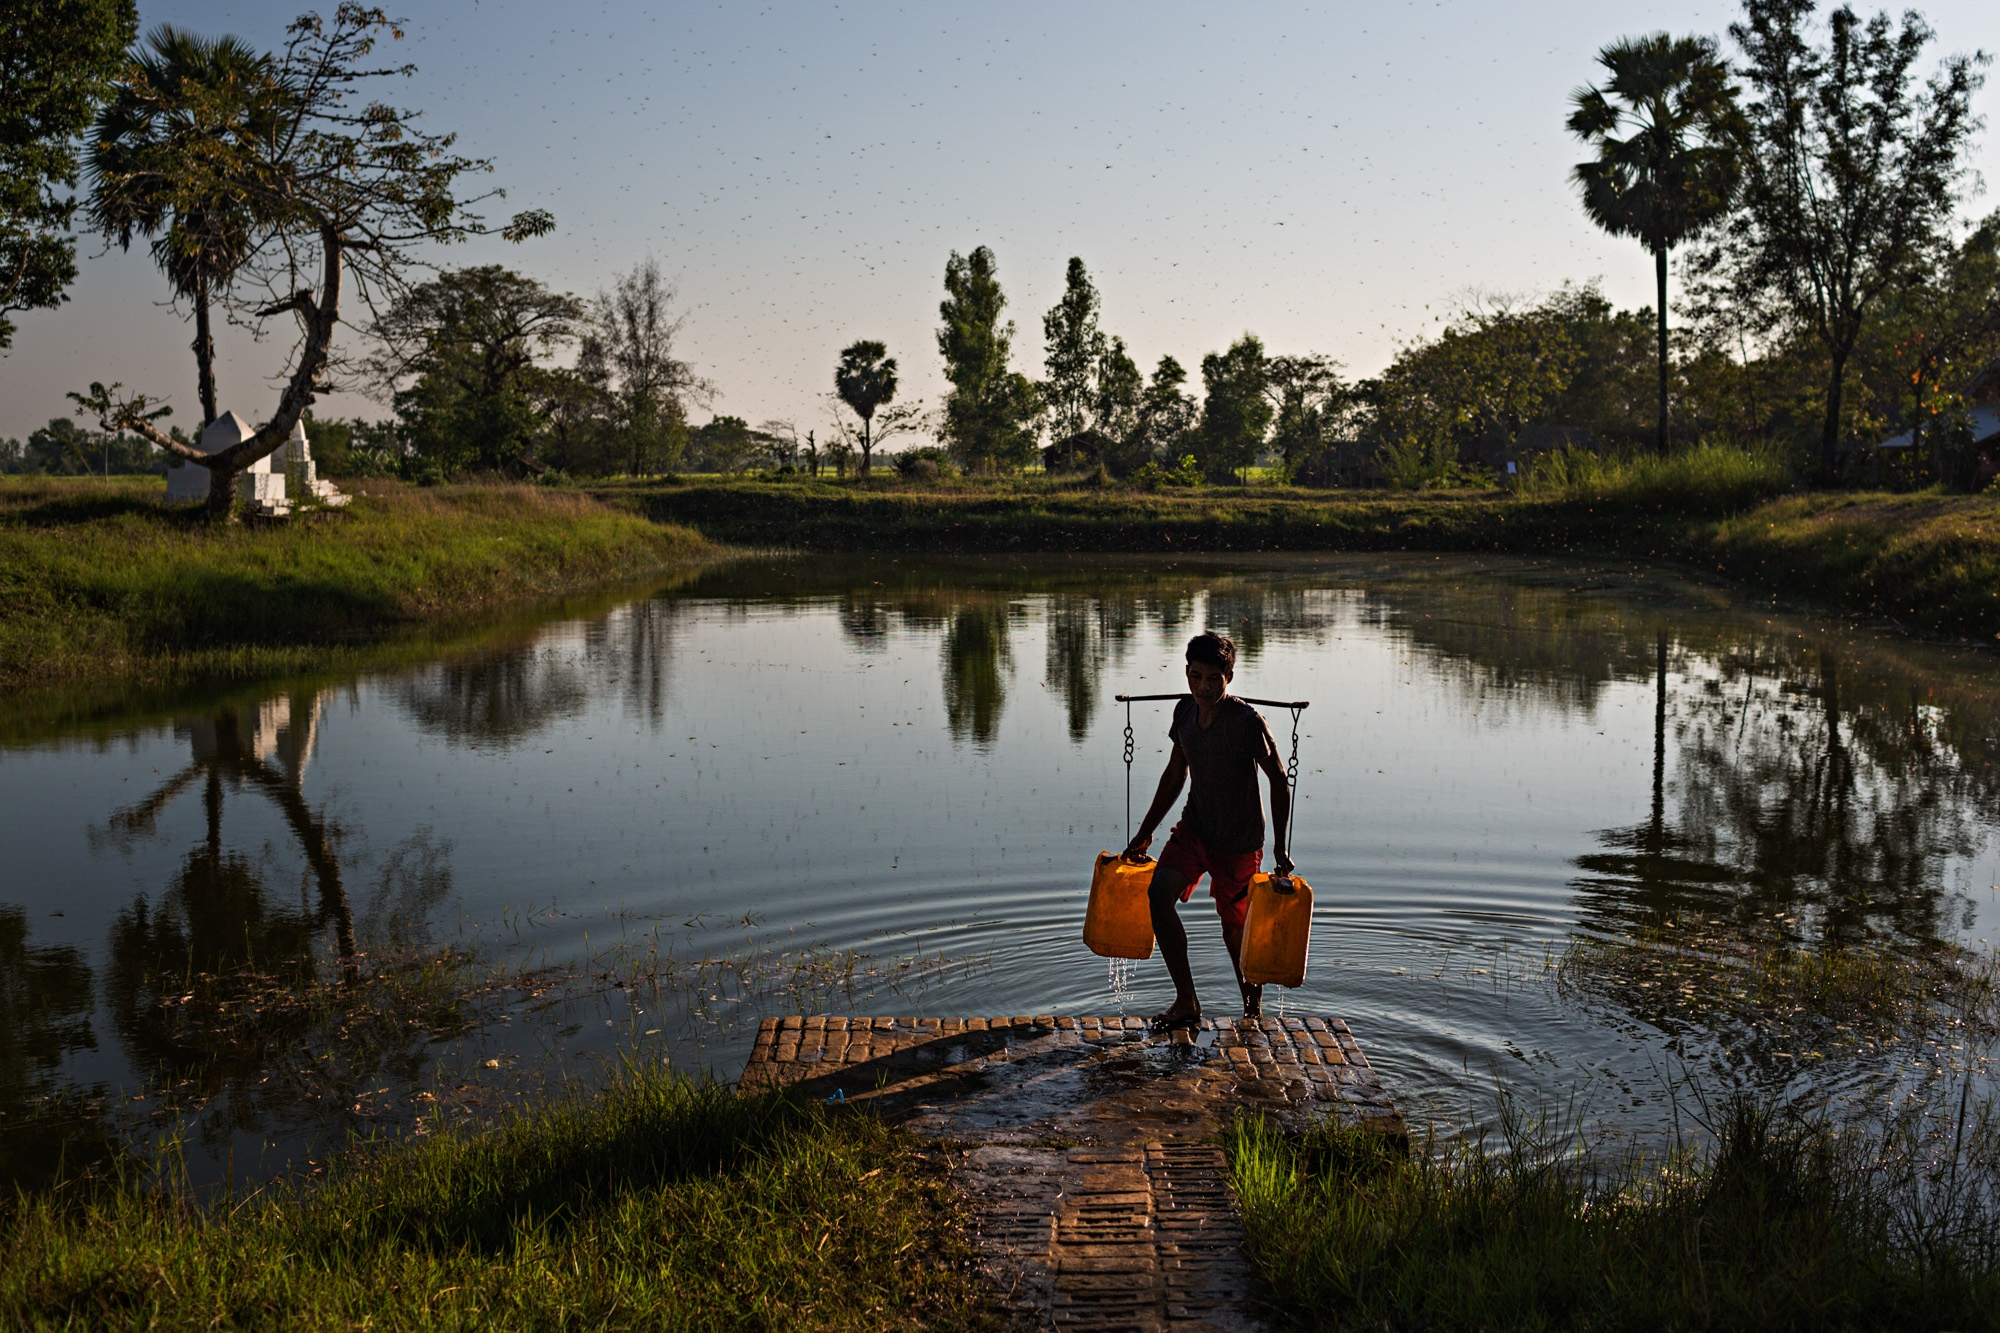 A young man draws water from a local reservoir near the small town of Pathein.